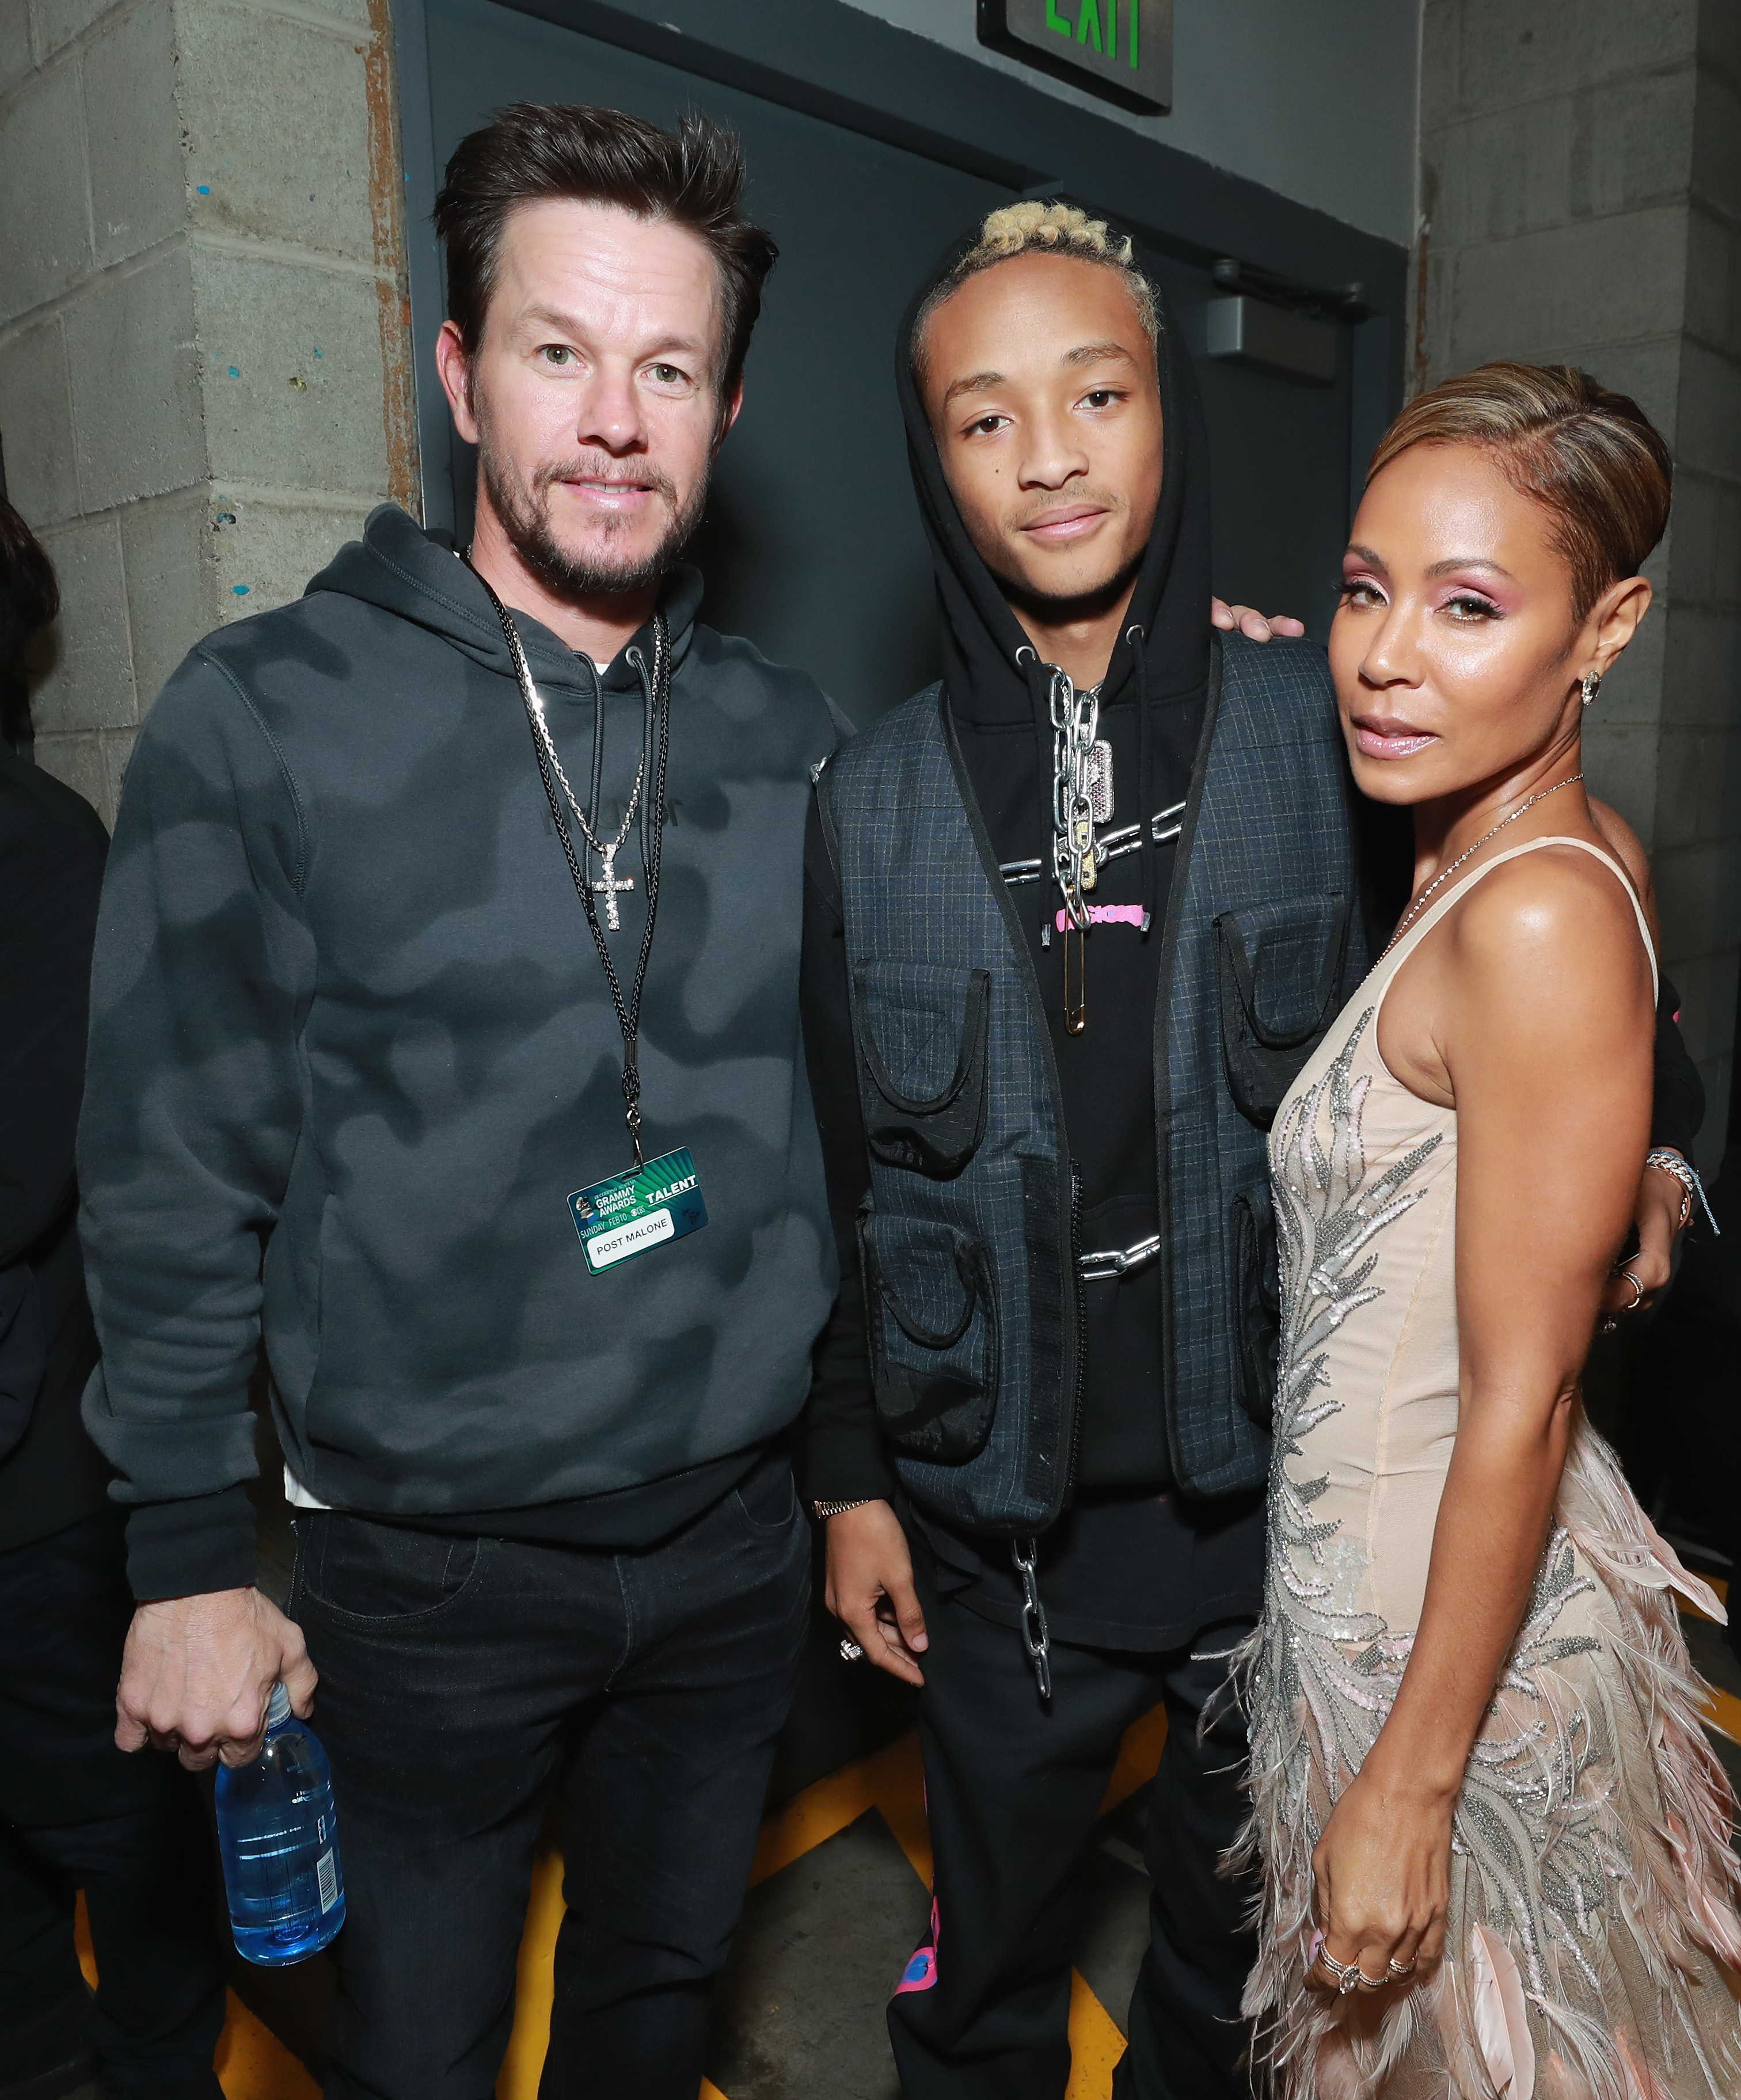 Mark Wahlberg, Jaden Smith and Jada Pinkett Smith pose backstage during the 61st Annual Grammy Awards in Los Angeles on Feb. 10, 2019.